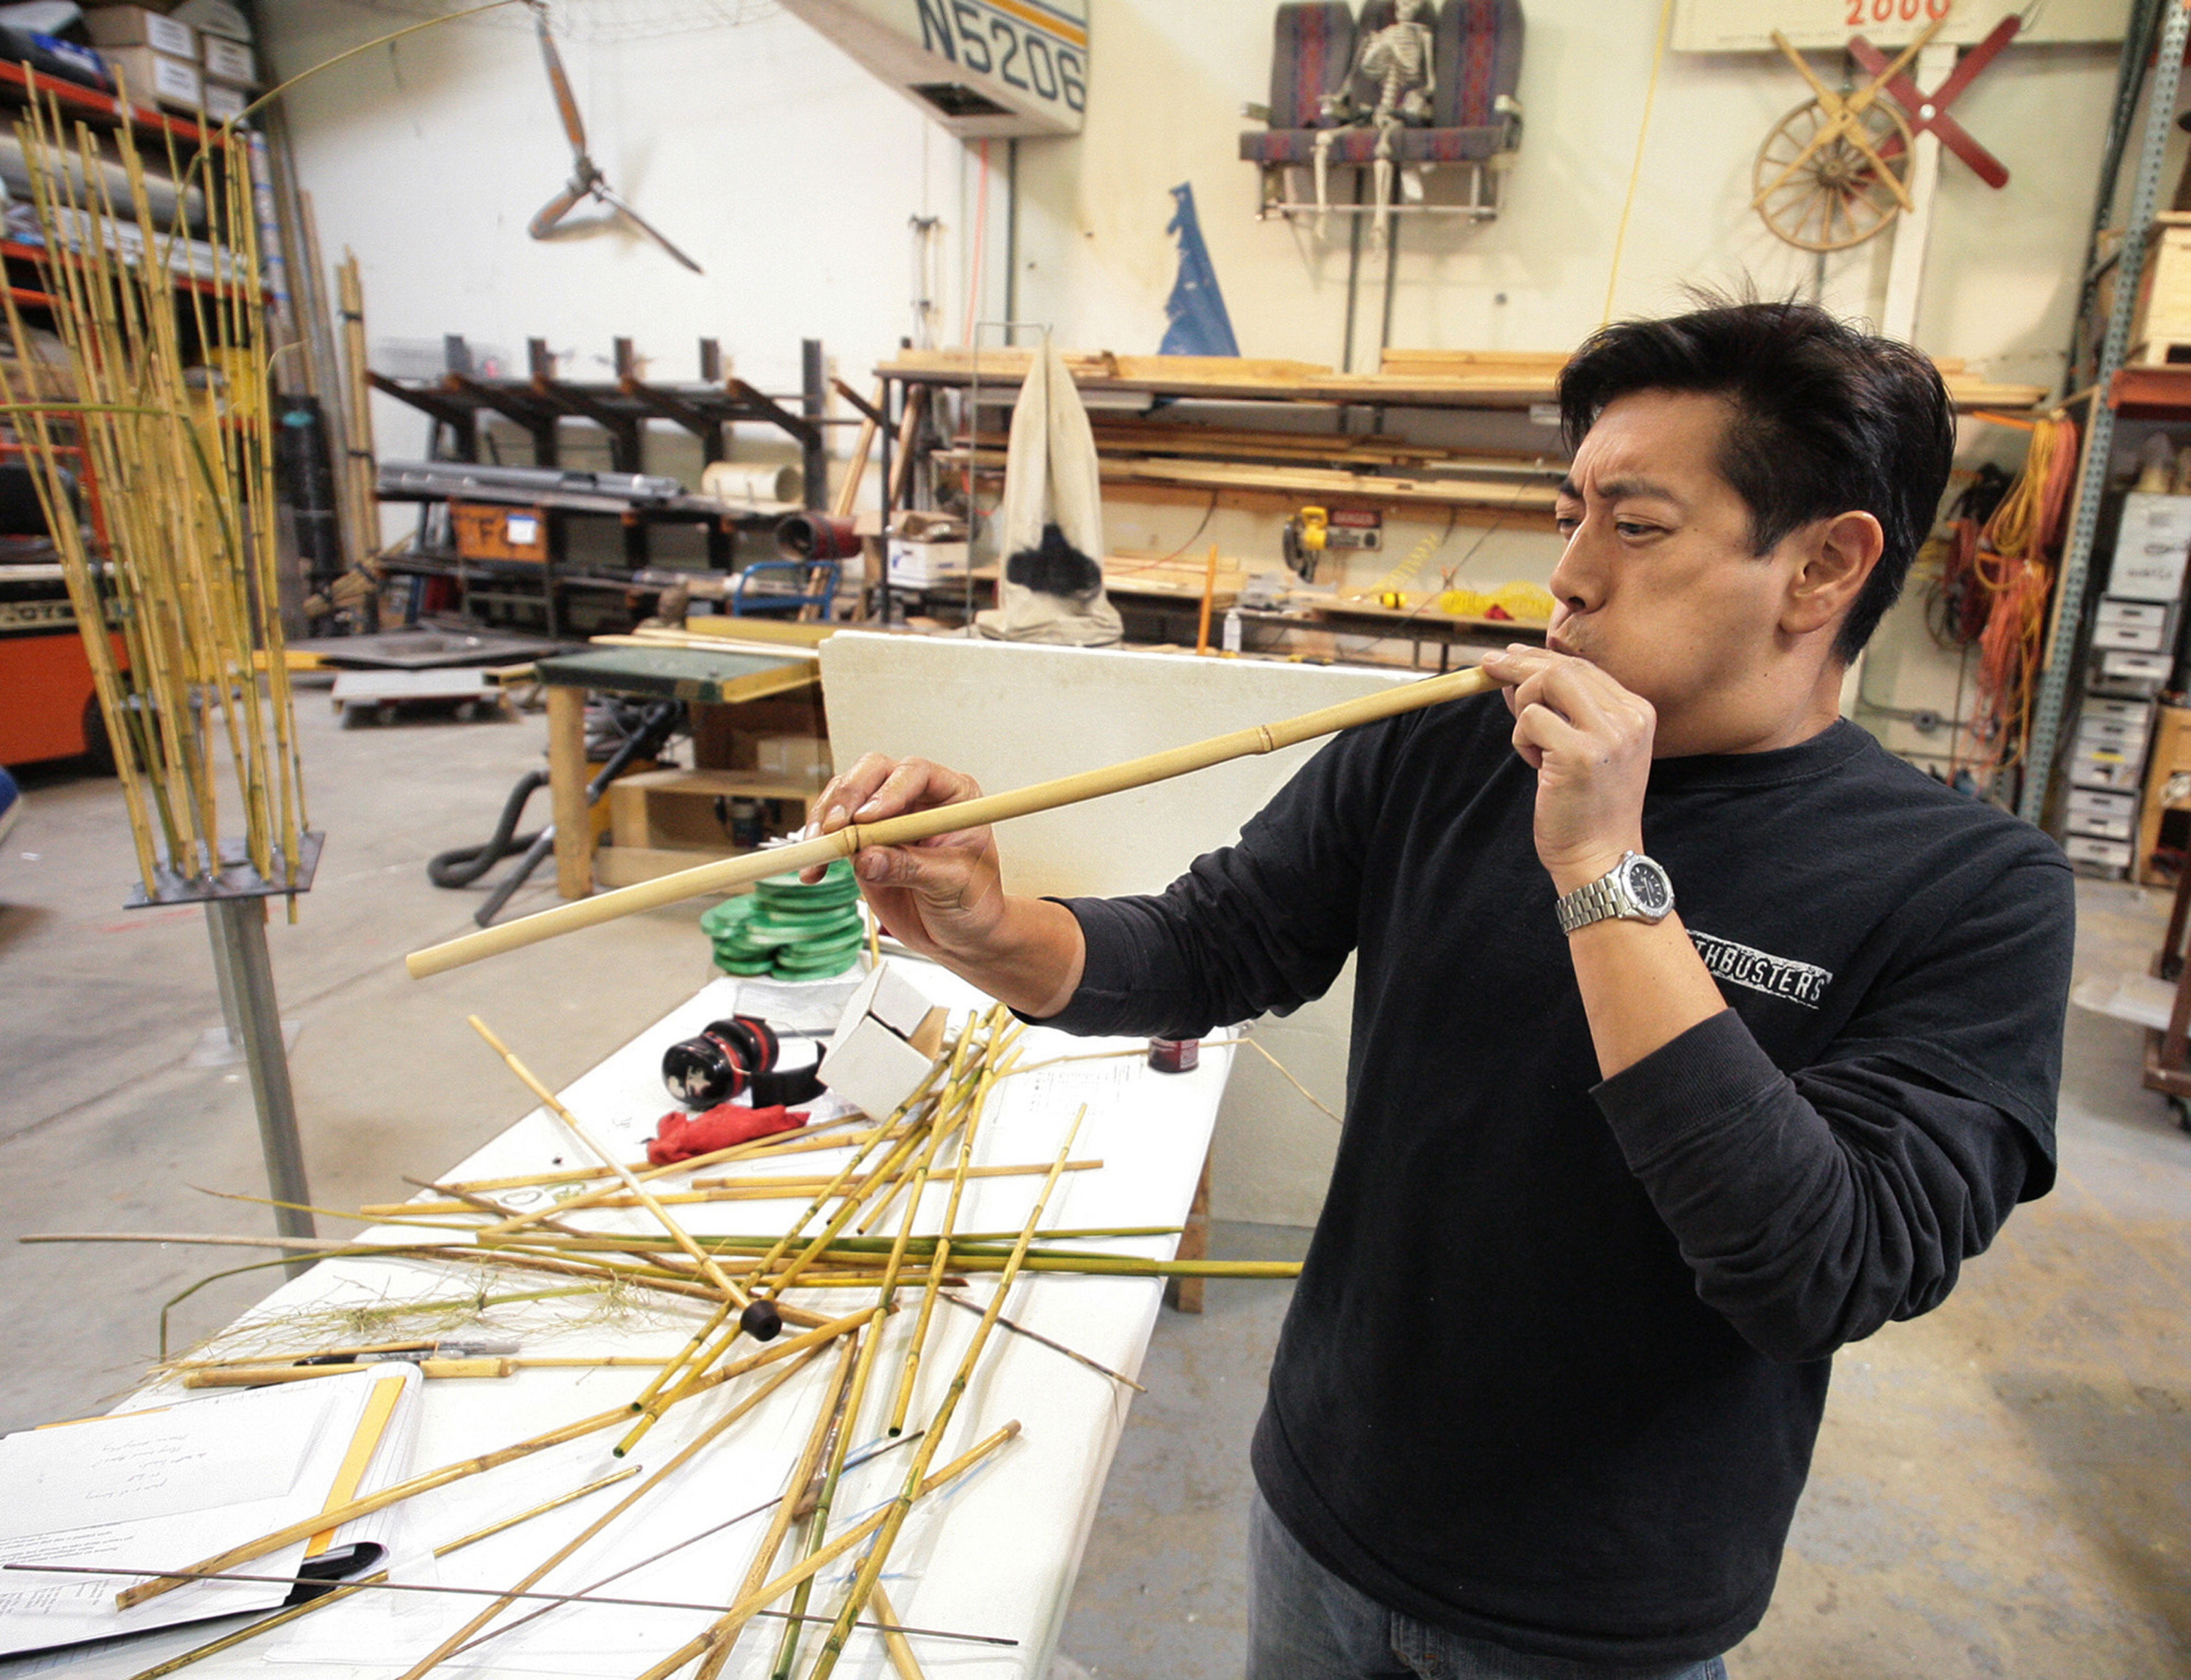 Man testing out a bamboo blowpipe in a workshop